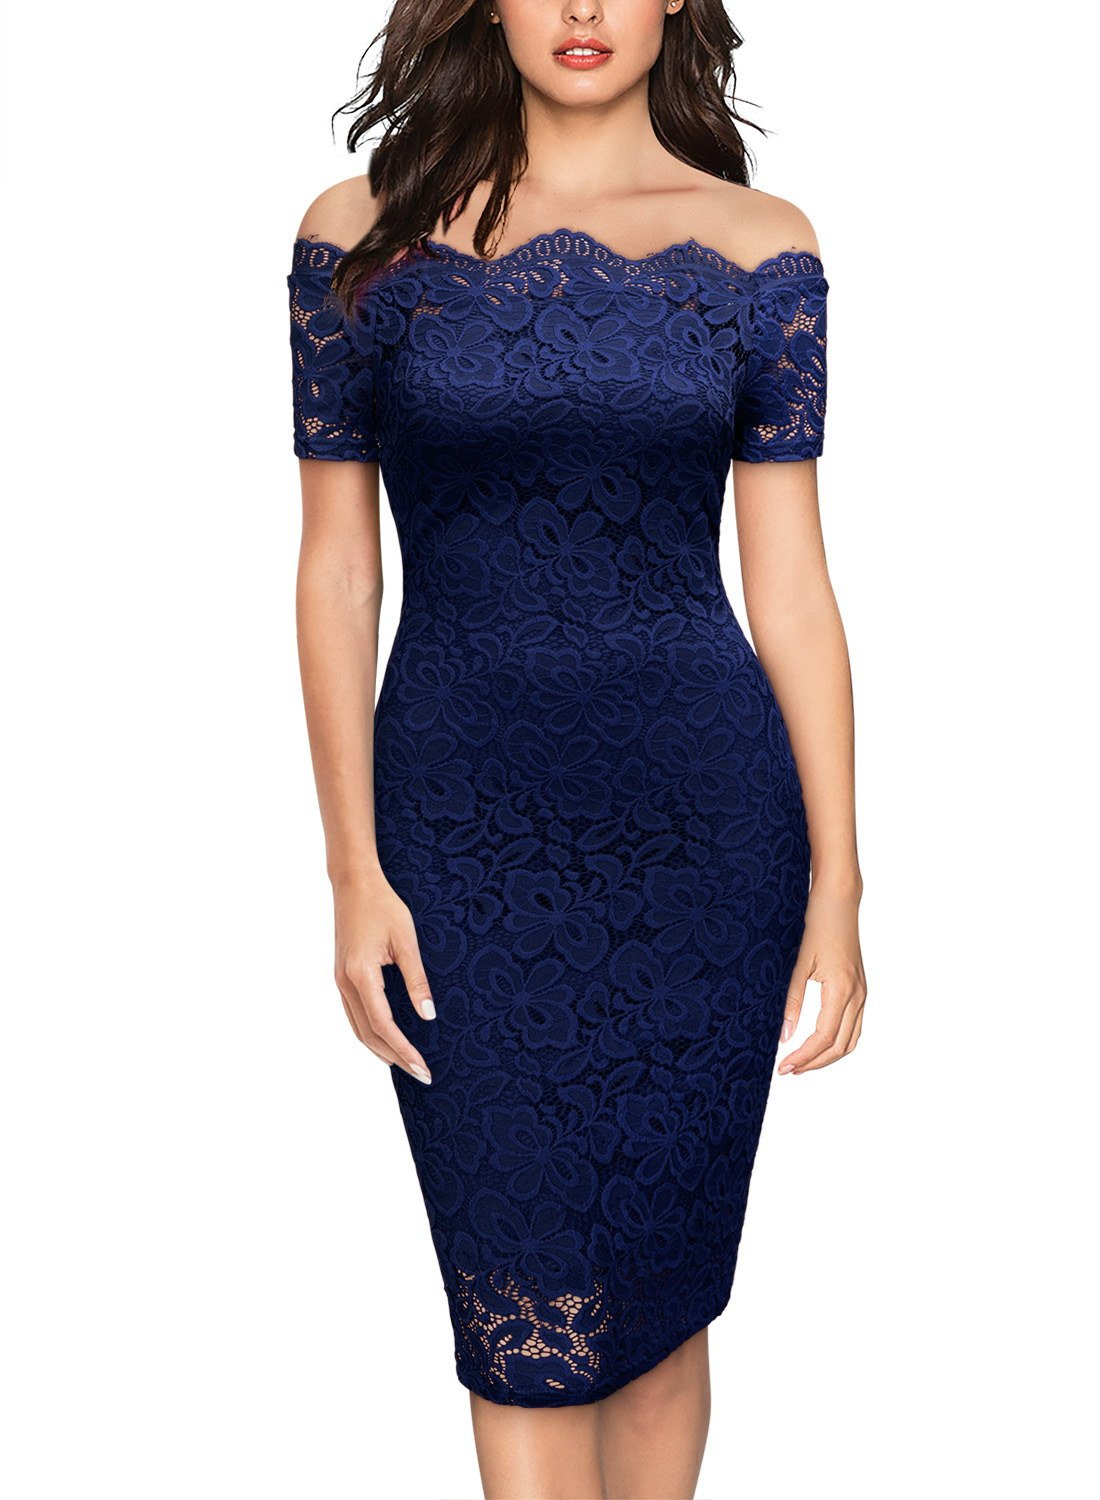 Miusol Women's Vintage Off Shoulder Flare Lace Slim Cocktail Pencil Dress (Medium, B-Dark Blue)